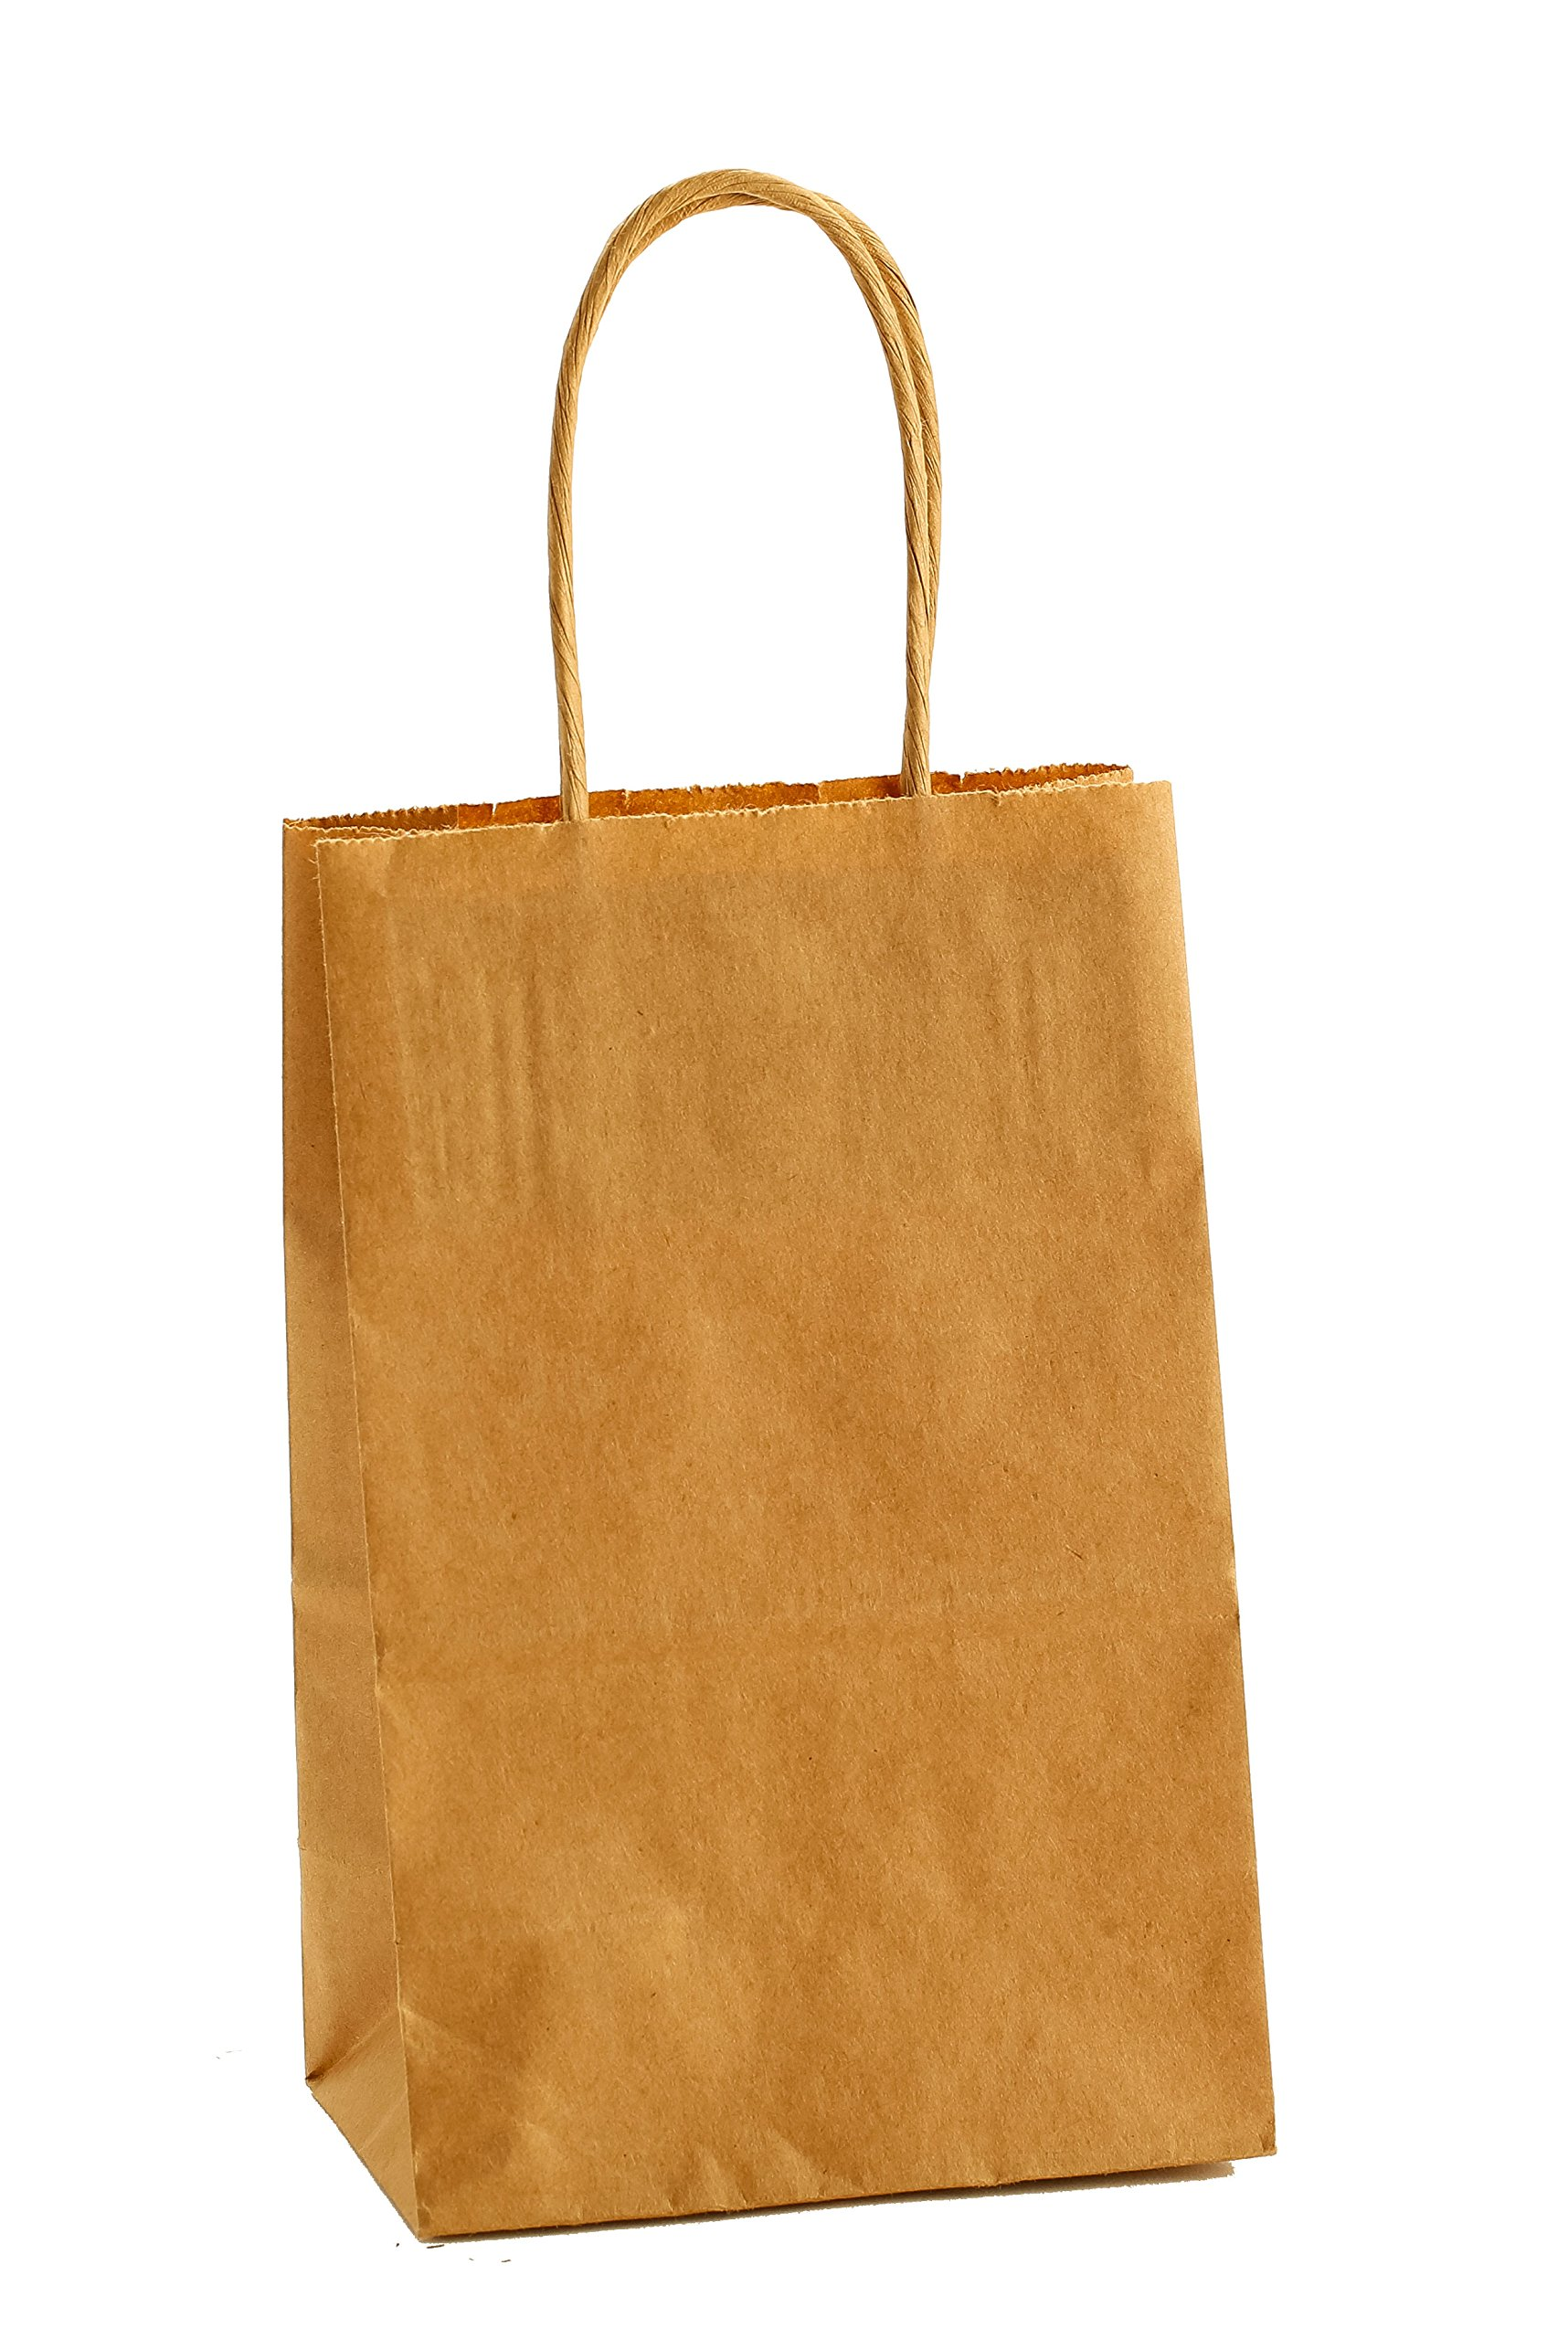 Premier Packaging AMZ-201025 15 Count Shoppers Gift Bag, 5.25'' X 3.5'' X 8.25'', Kraft